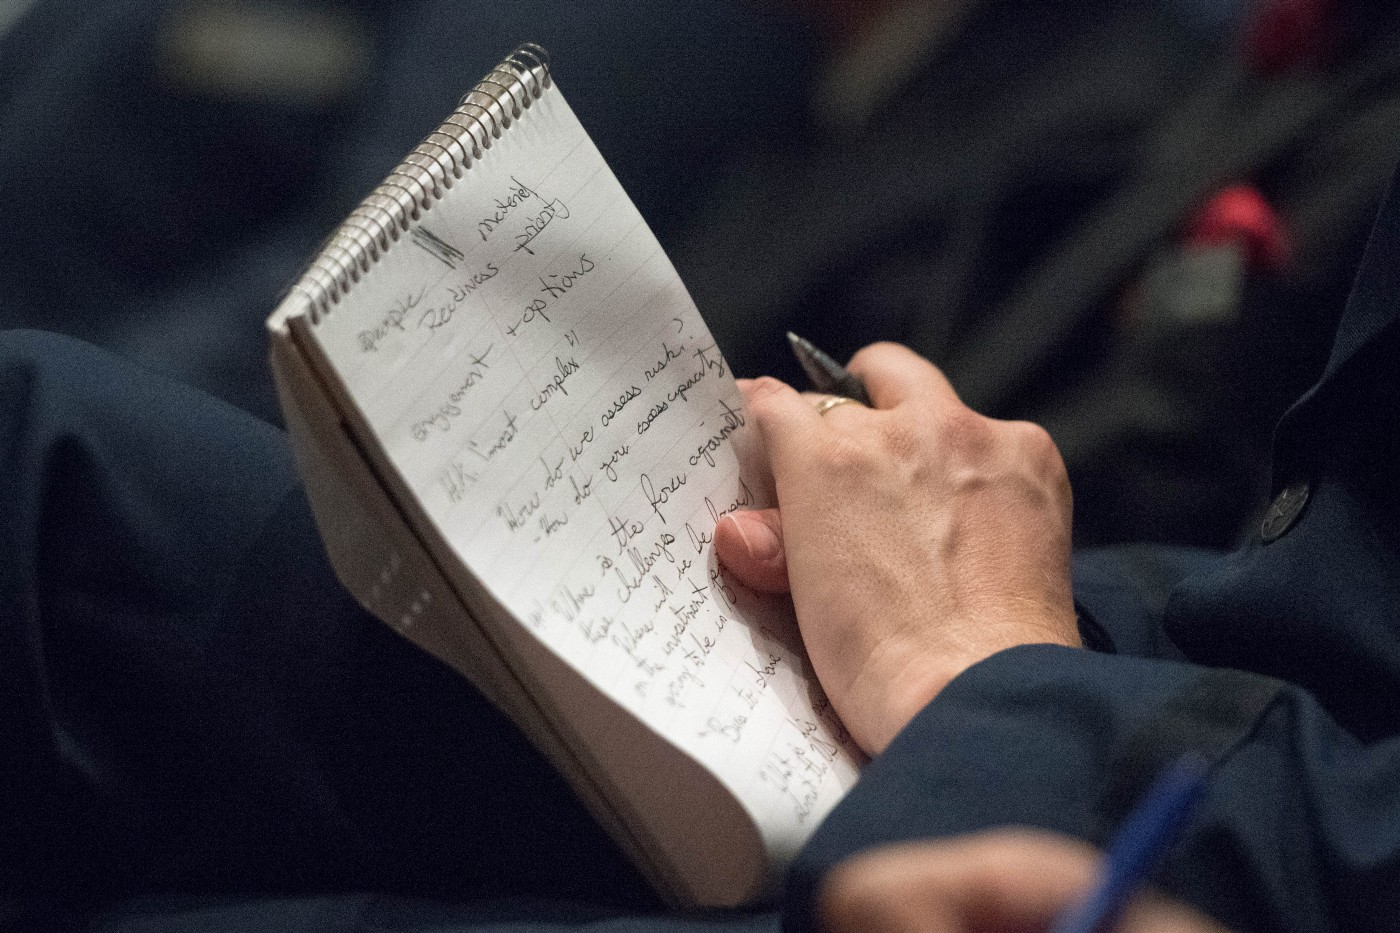 A University student taking notes